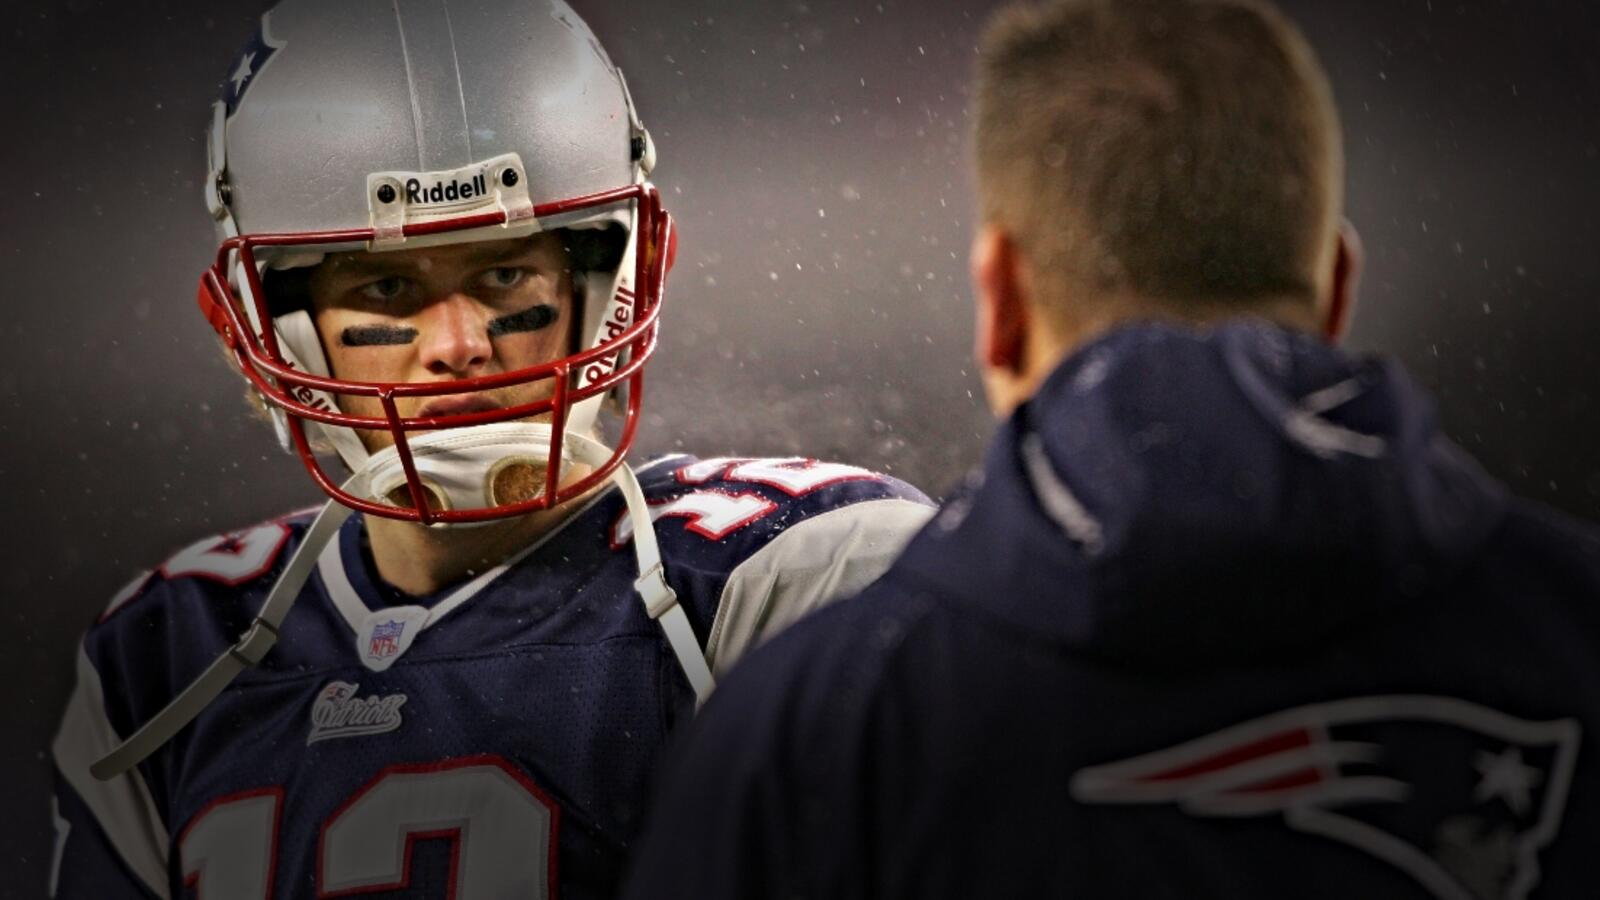 Here is Why Tom Brady Left the Patriots, According to Charlie Weis